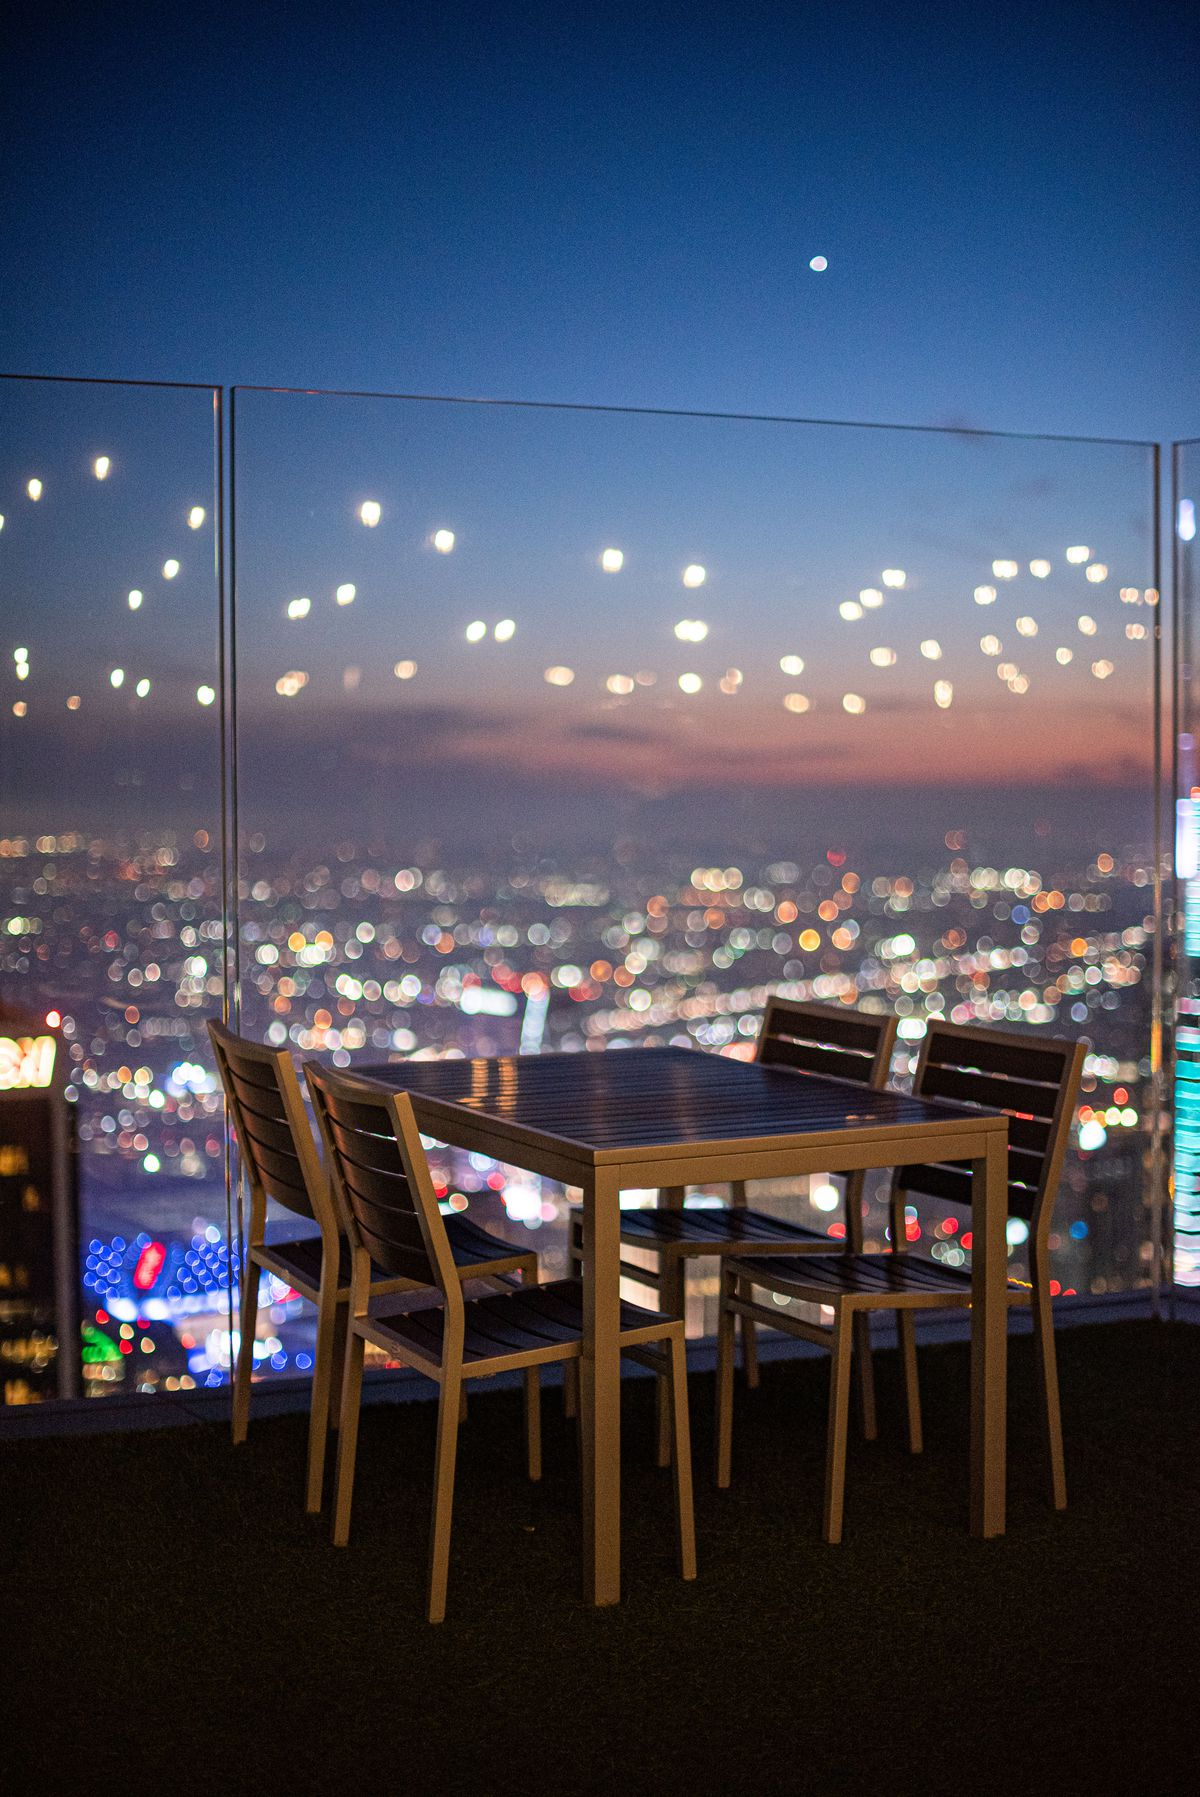 A patio chair set on an open-air deck overlooking a twinkling city.